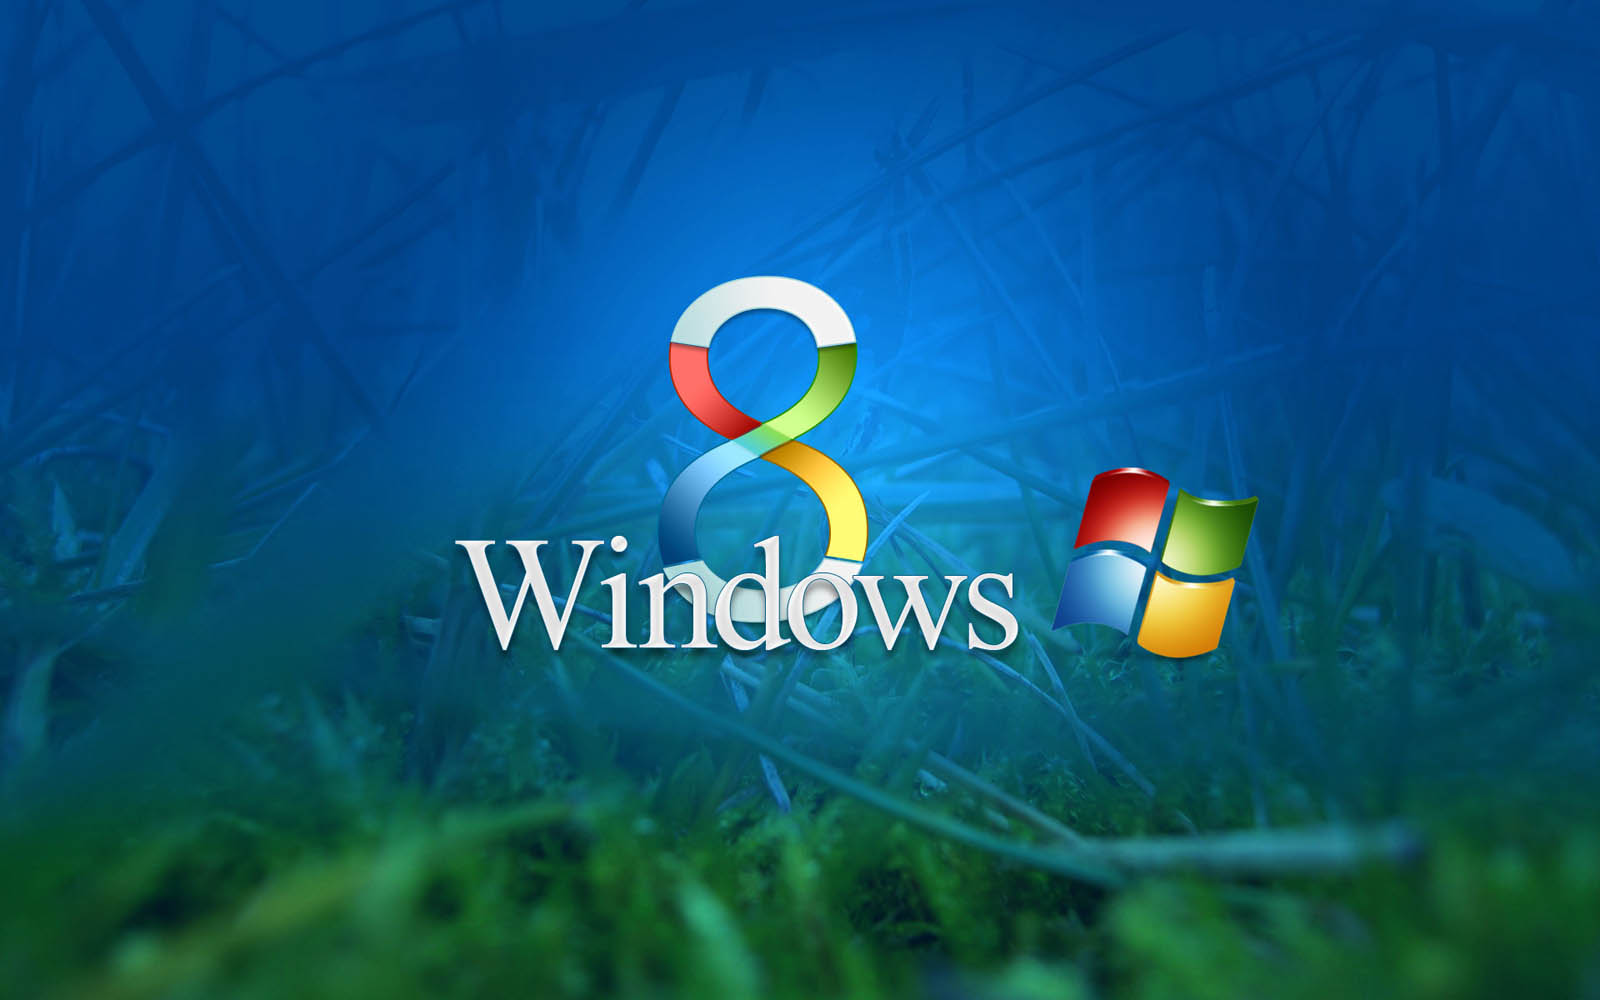 wallpapers for windows 8 laptop - photo #2